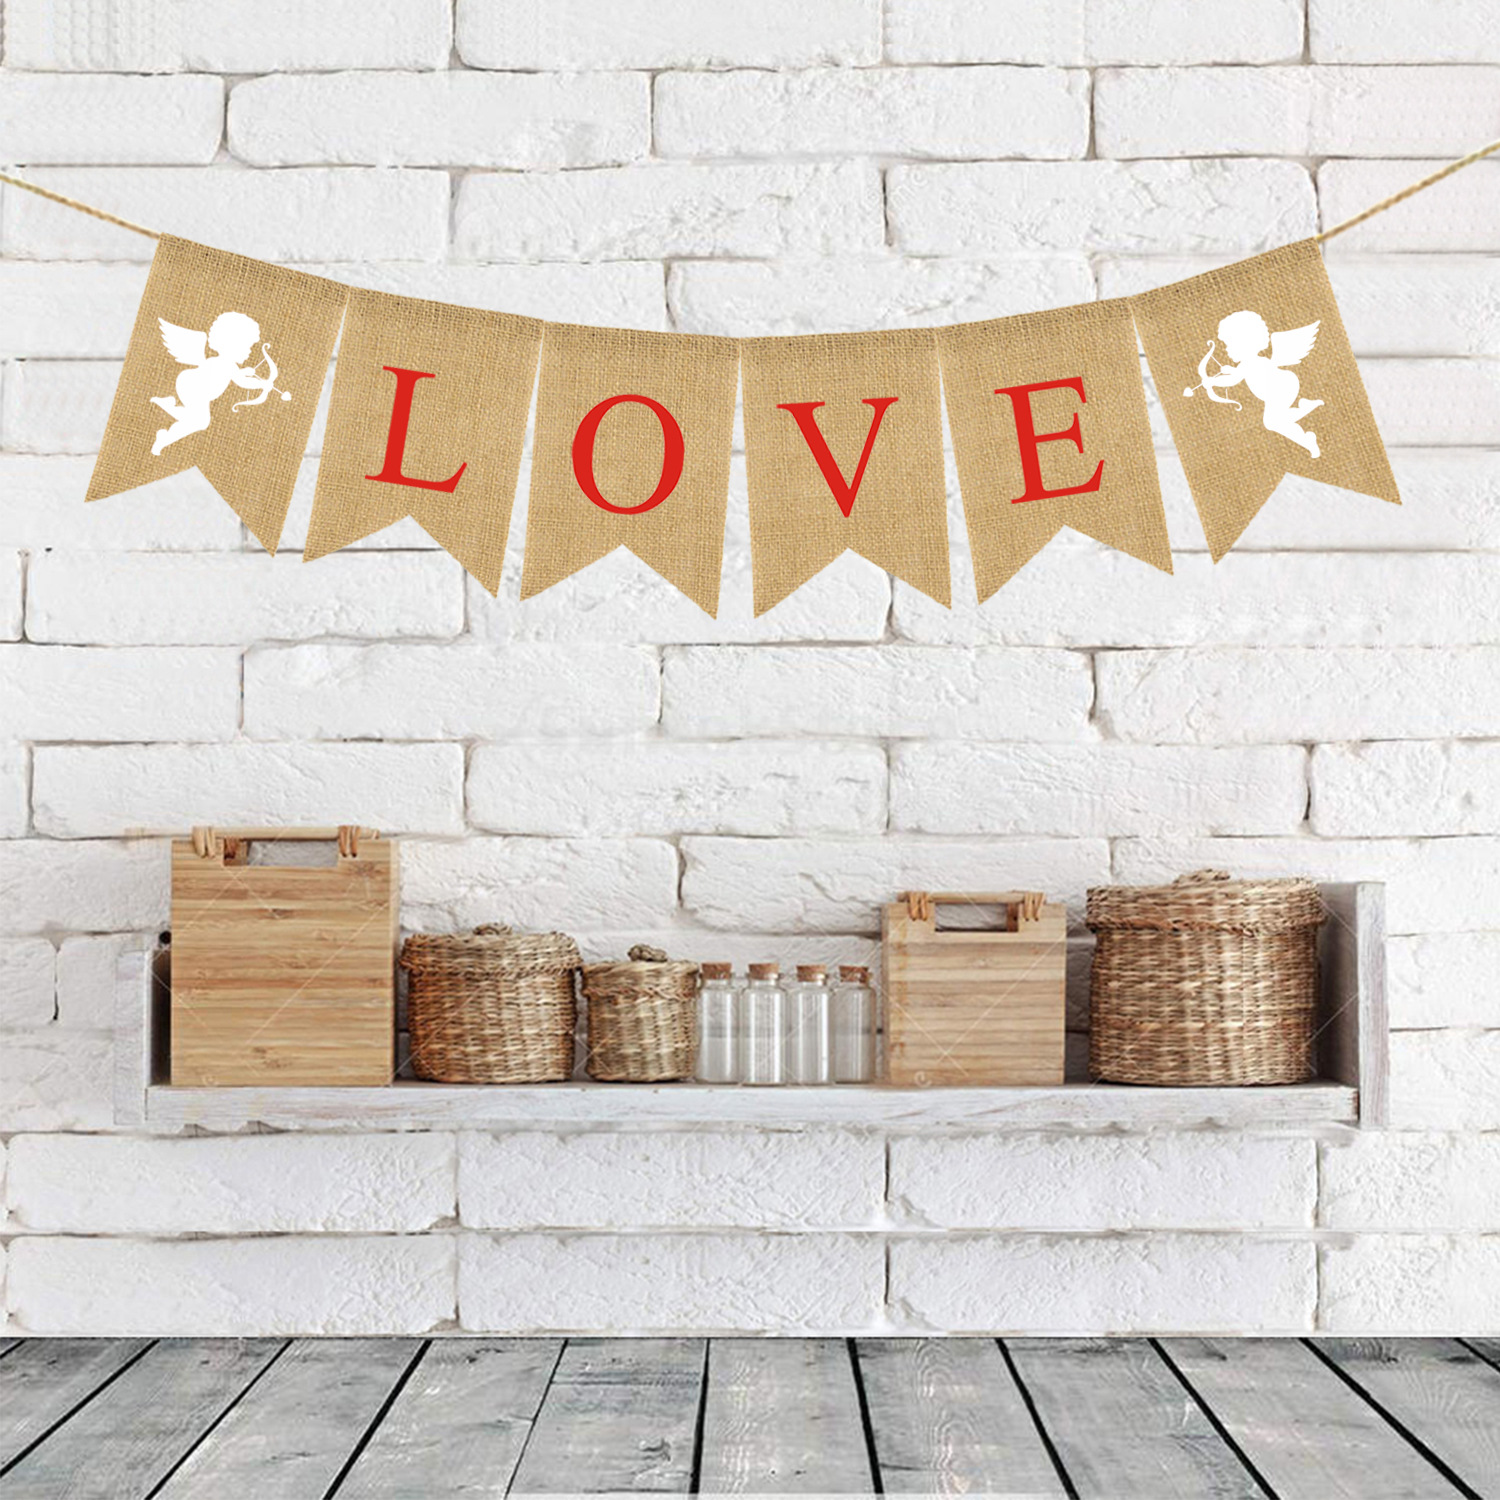 Valentines Day Banner Happy Valentine/'s Day Decorations Flag Hanging Huge Sign Holiday Party Supplies Love Heart Cupid Home Decor for Store,Outdoor,Indoor,Yard,Garden,Porch,Lawn